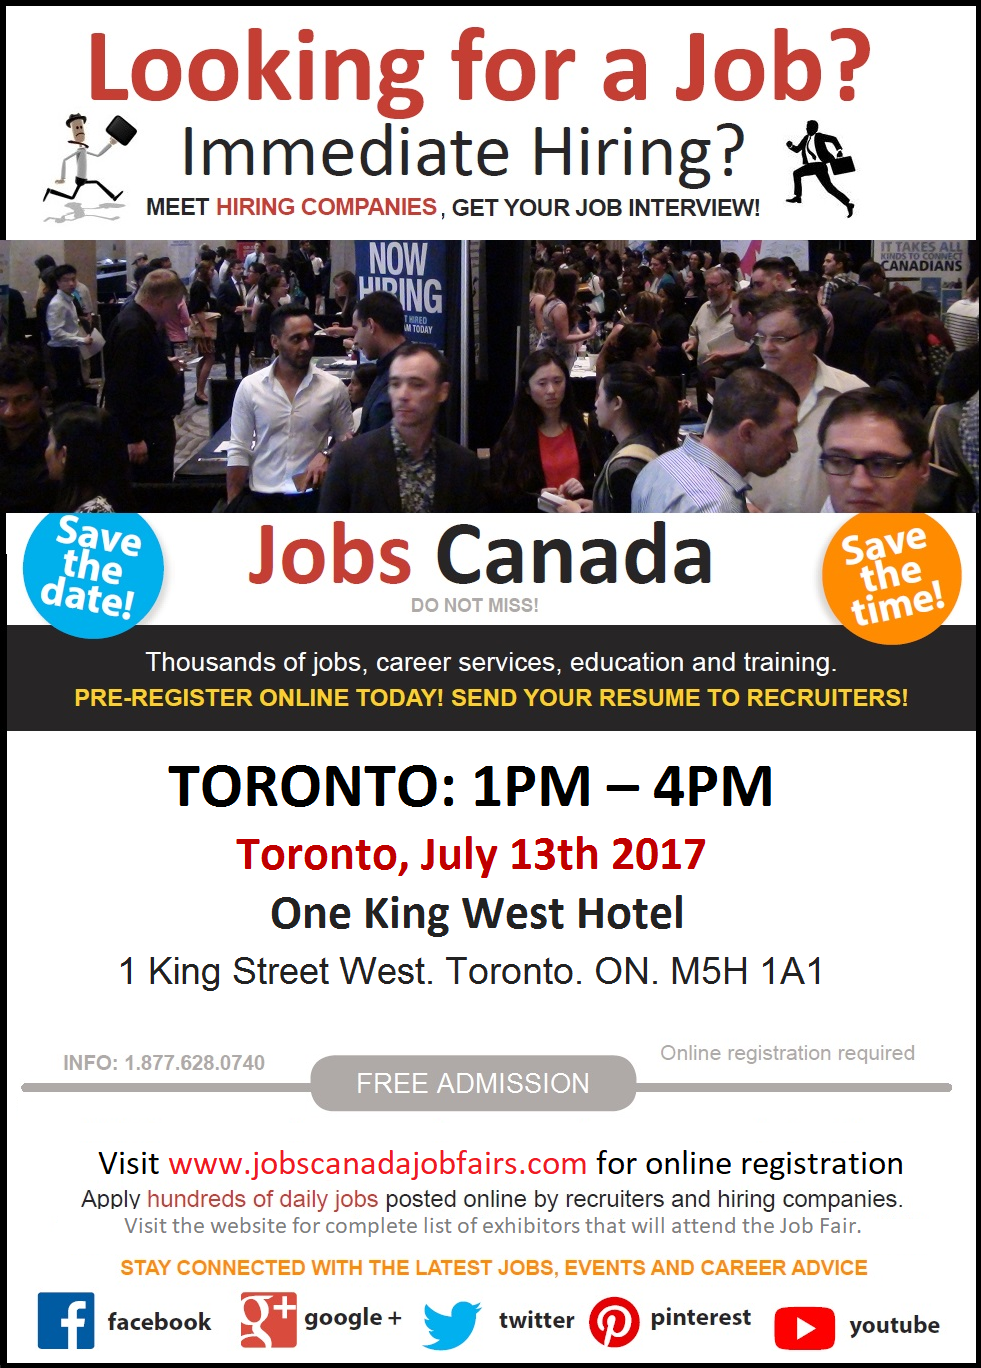 Looking for work? Don't miss the Jobs Canada Toronto